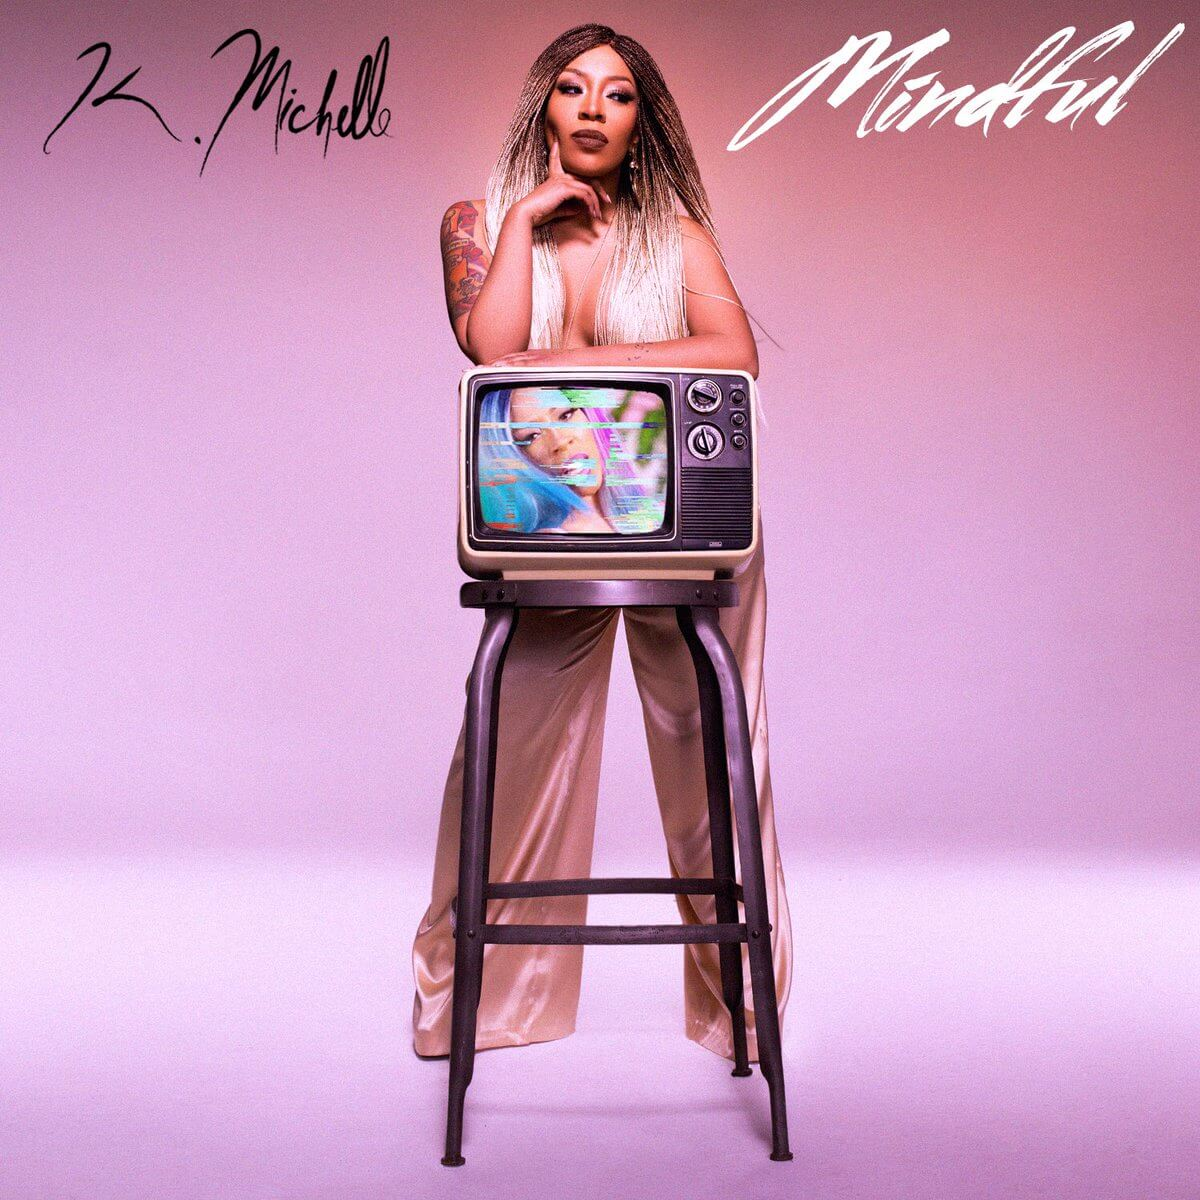 K. Michelle - Mindful [New Song]